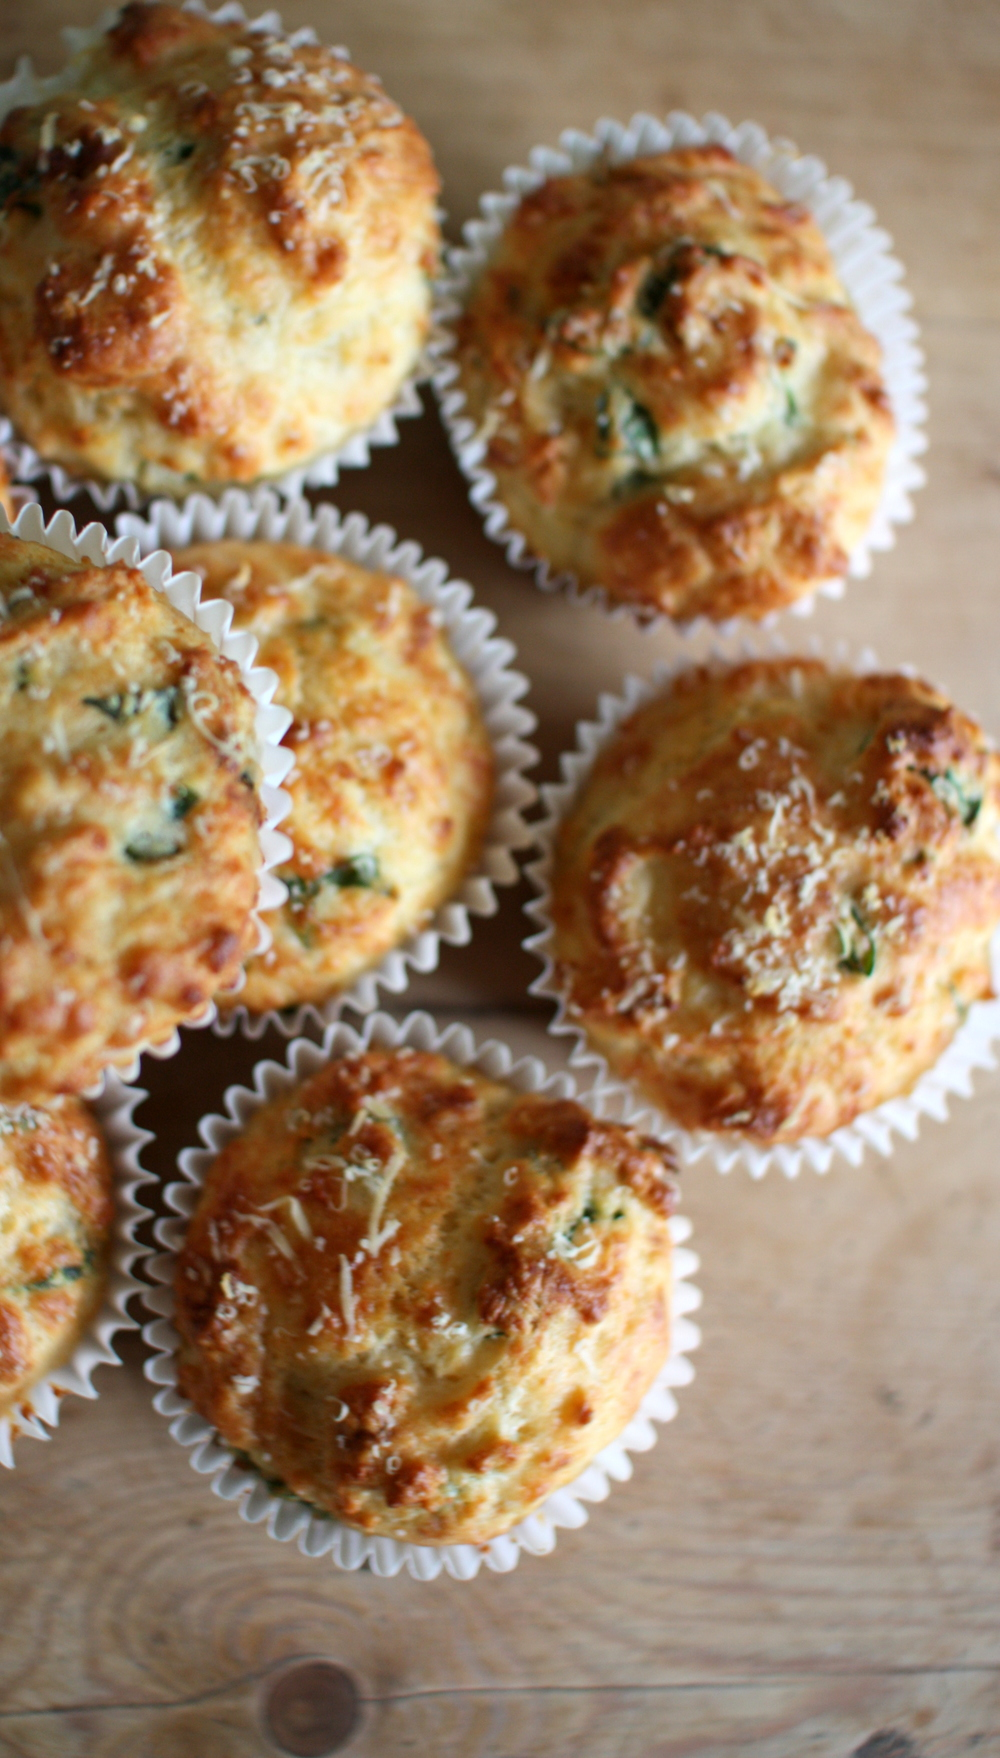 Cheese and Herb Muffins are featured in this month's The Simple Things magazine